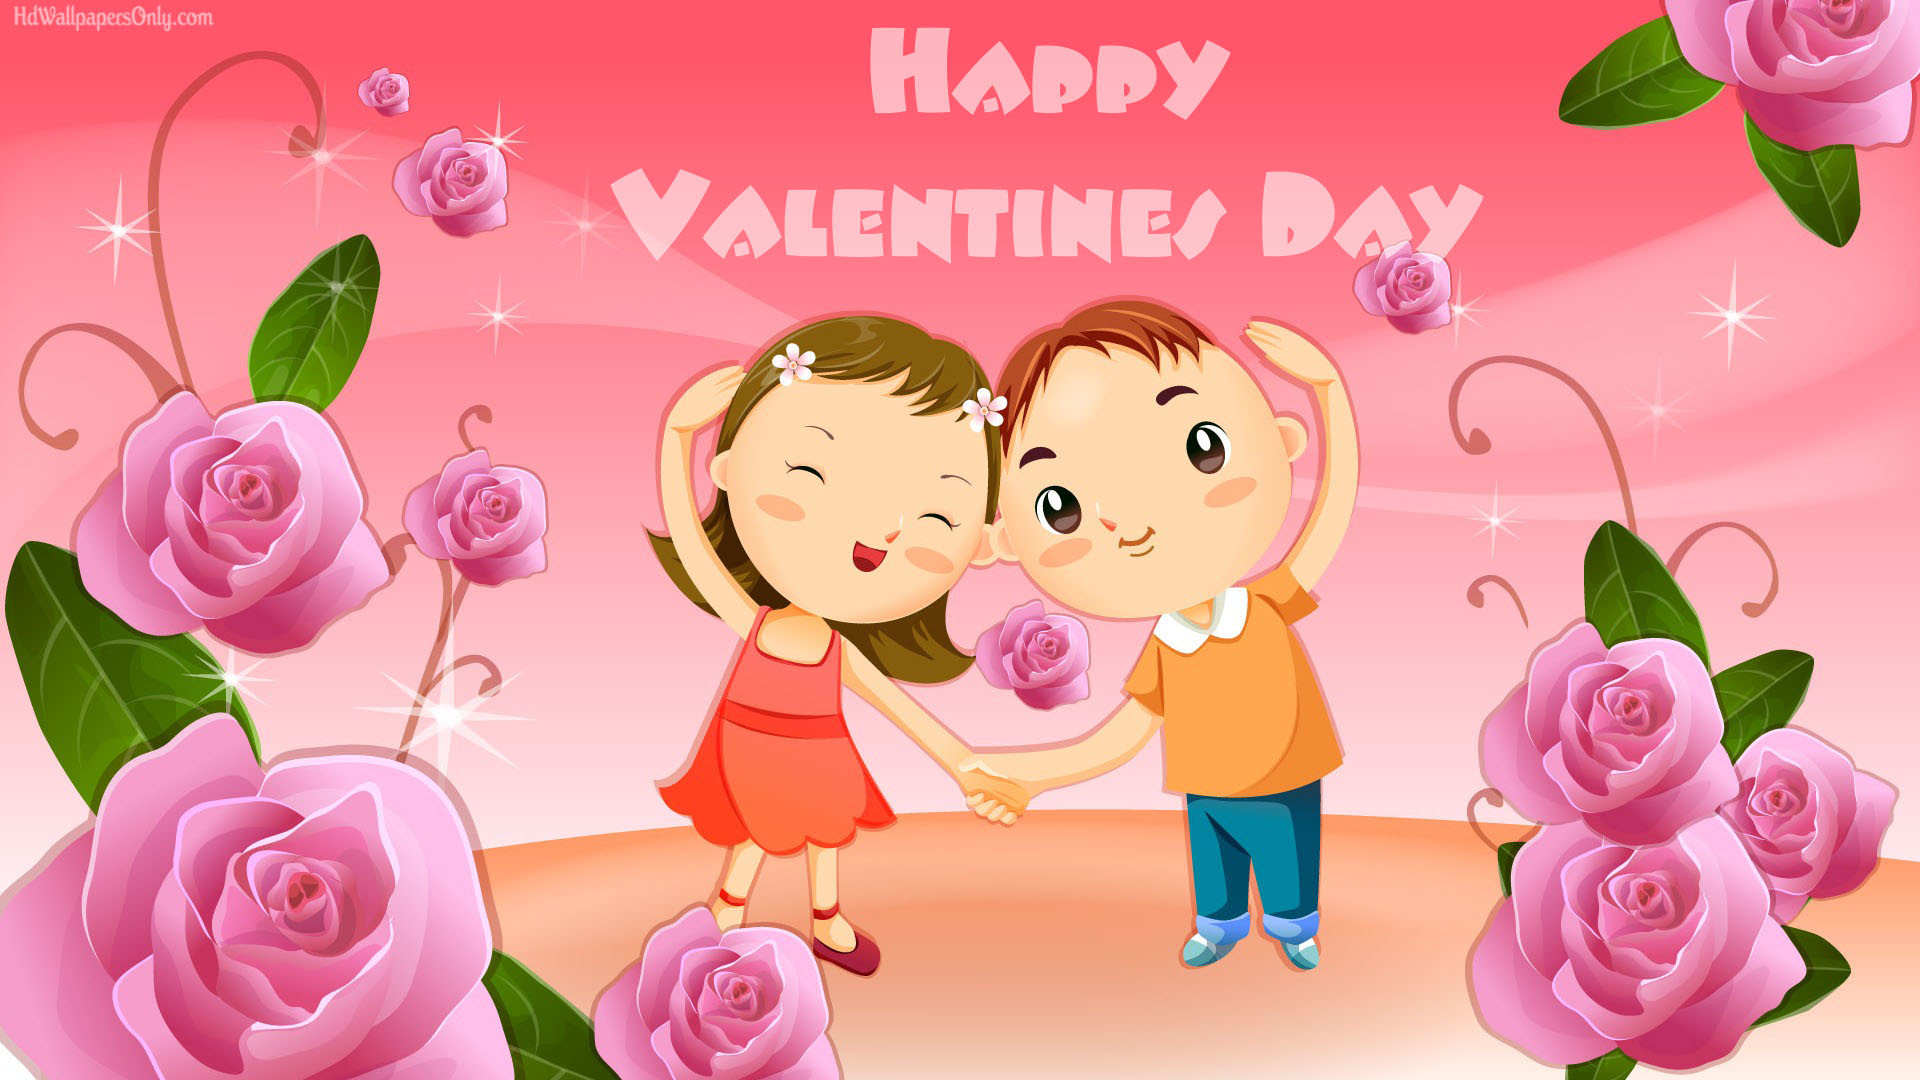 Cute Cartoon Valentine Day 2015 Wallpaper Imag #13269 Wallpaper | High .